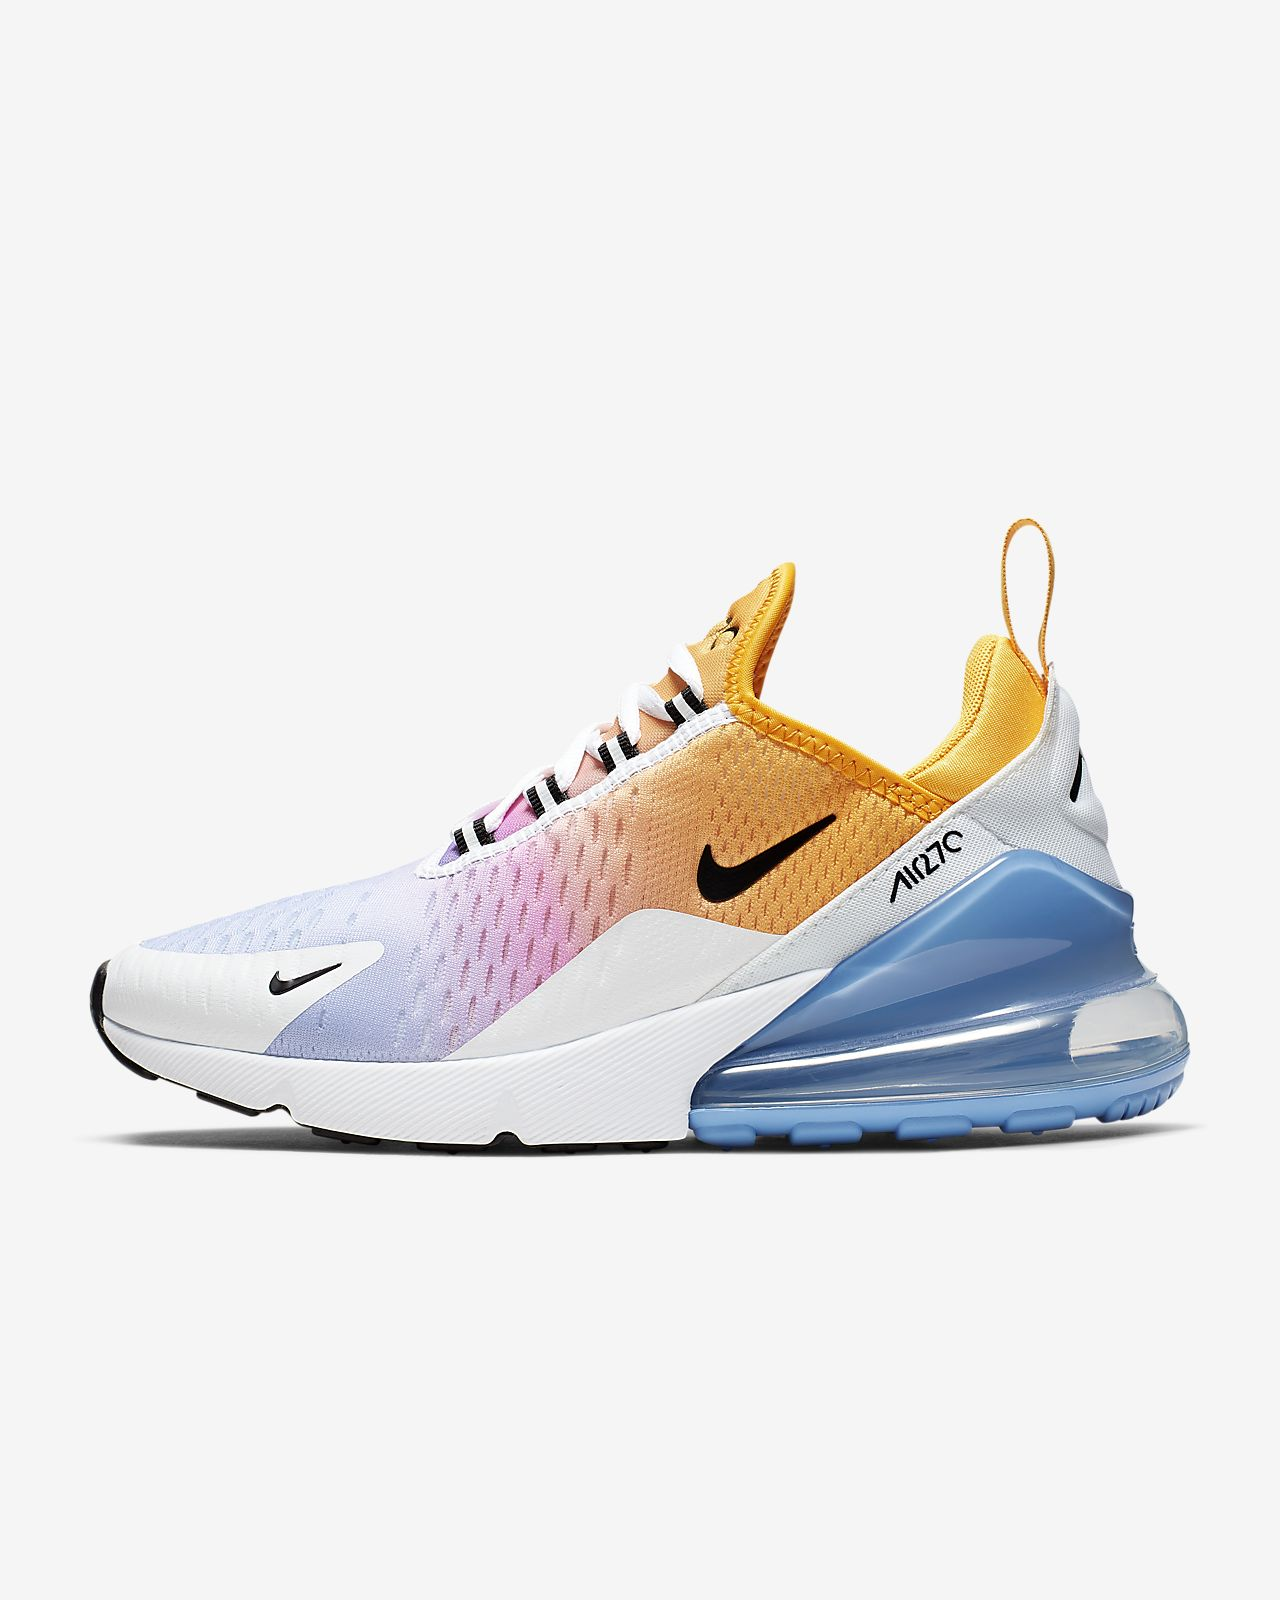 separation shoes ae672 42dc7 ... Nike Air Max 270 Women s Shoe